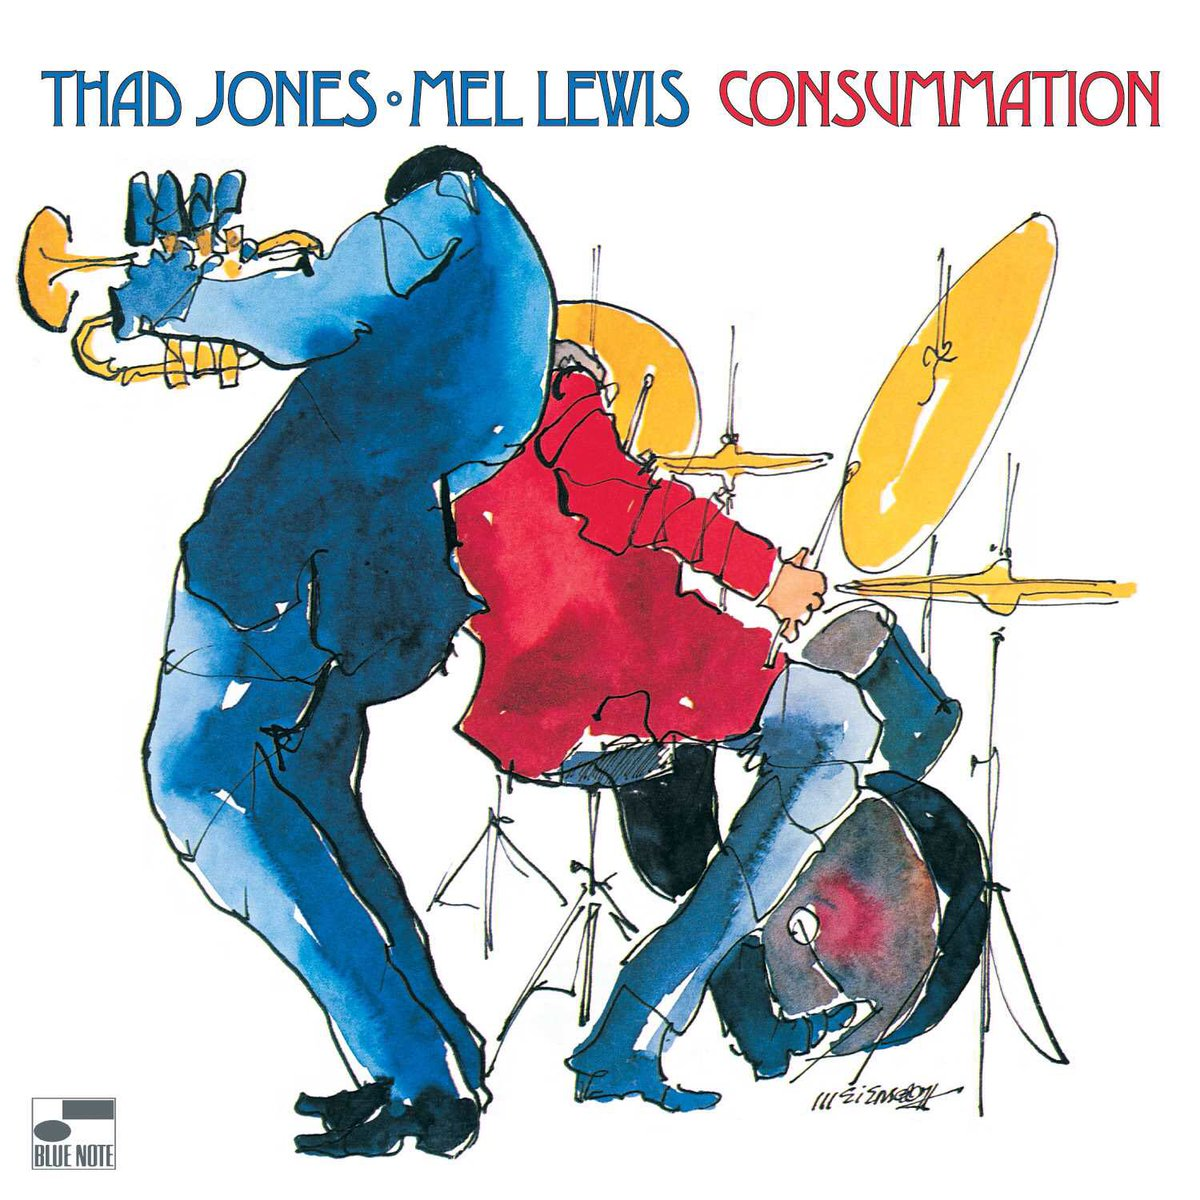 """#bluenoterecords """"50 years ago today in 1970 the Thad Jones/Mel Lewis Jazz Orchestra was in the studio recording """"Consummation"""": https://bluenote.lnk.to/ThadMel-Consummation… #OTD pic.twitter.com/PFfn3Trwfm"""""""